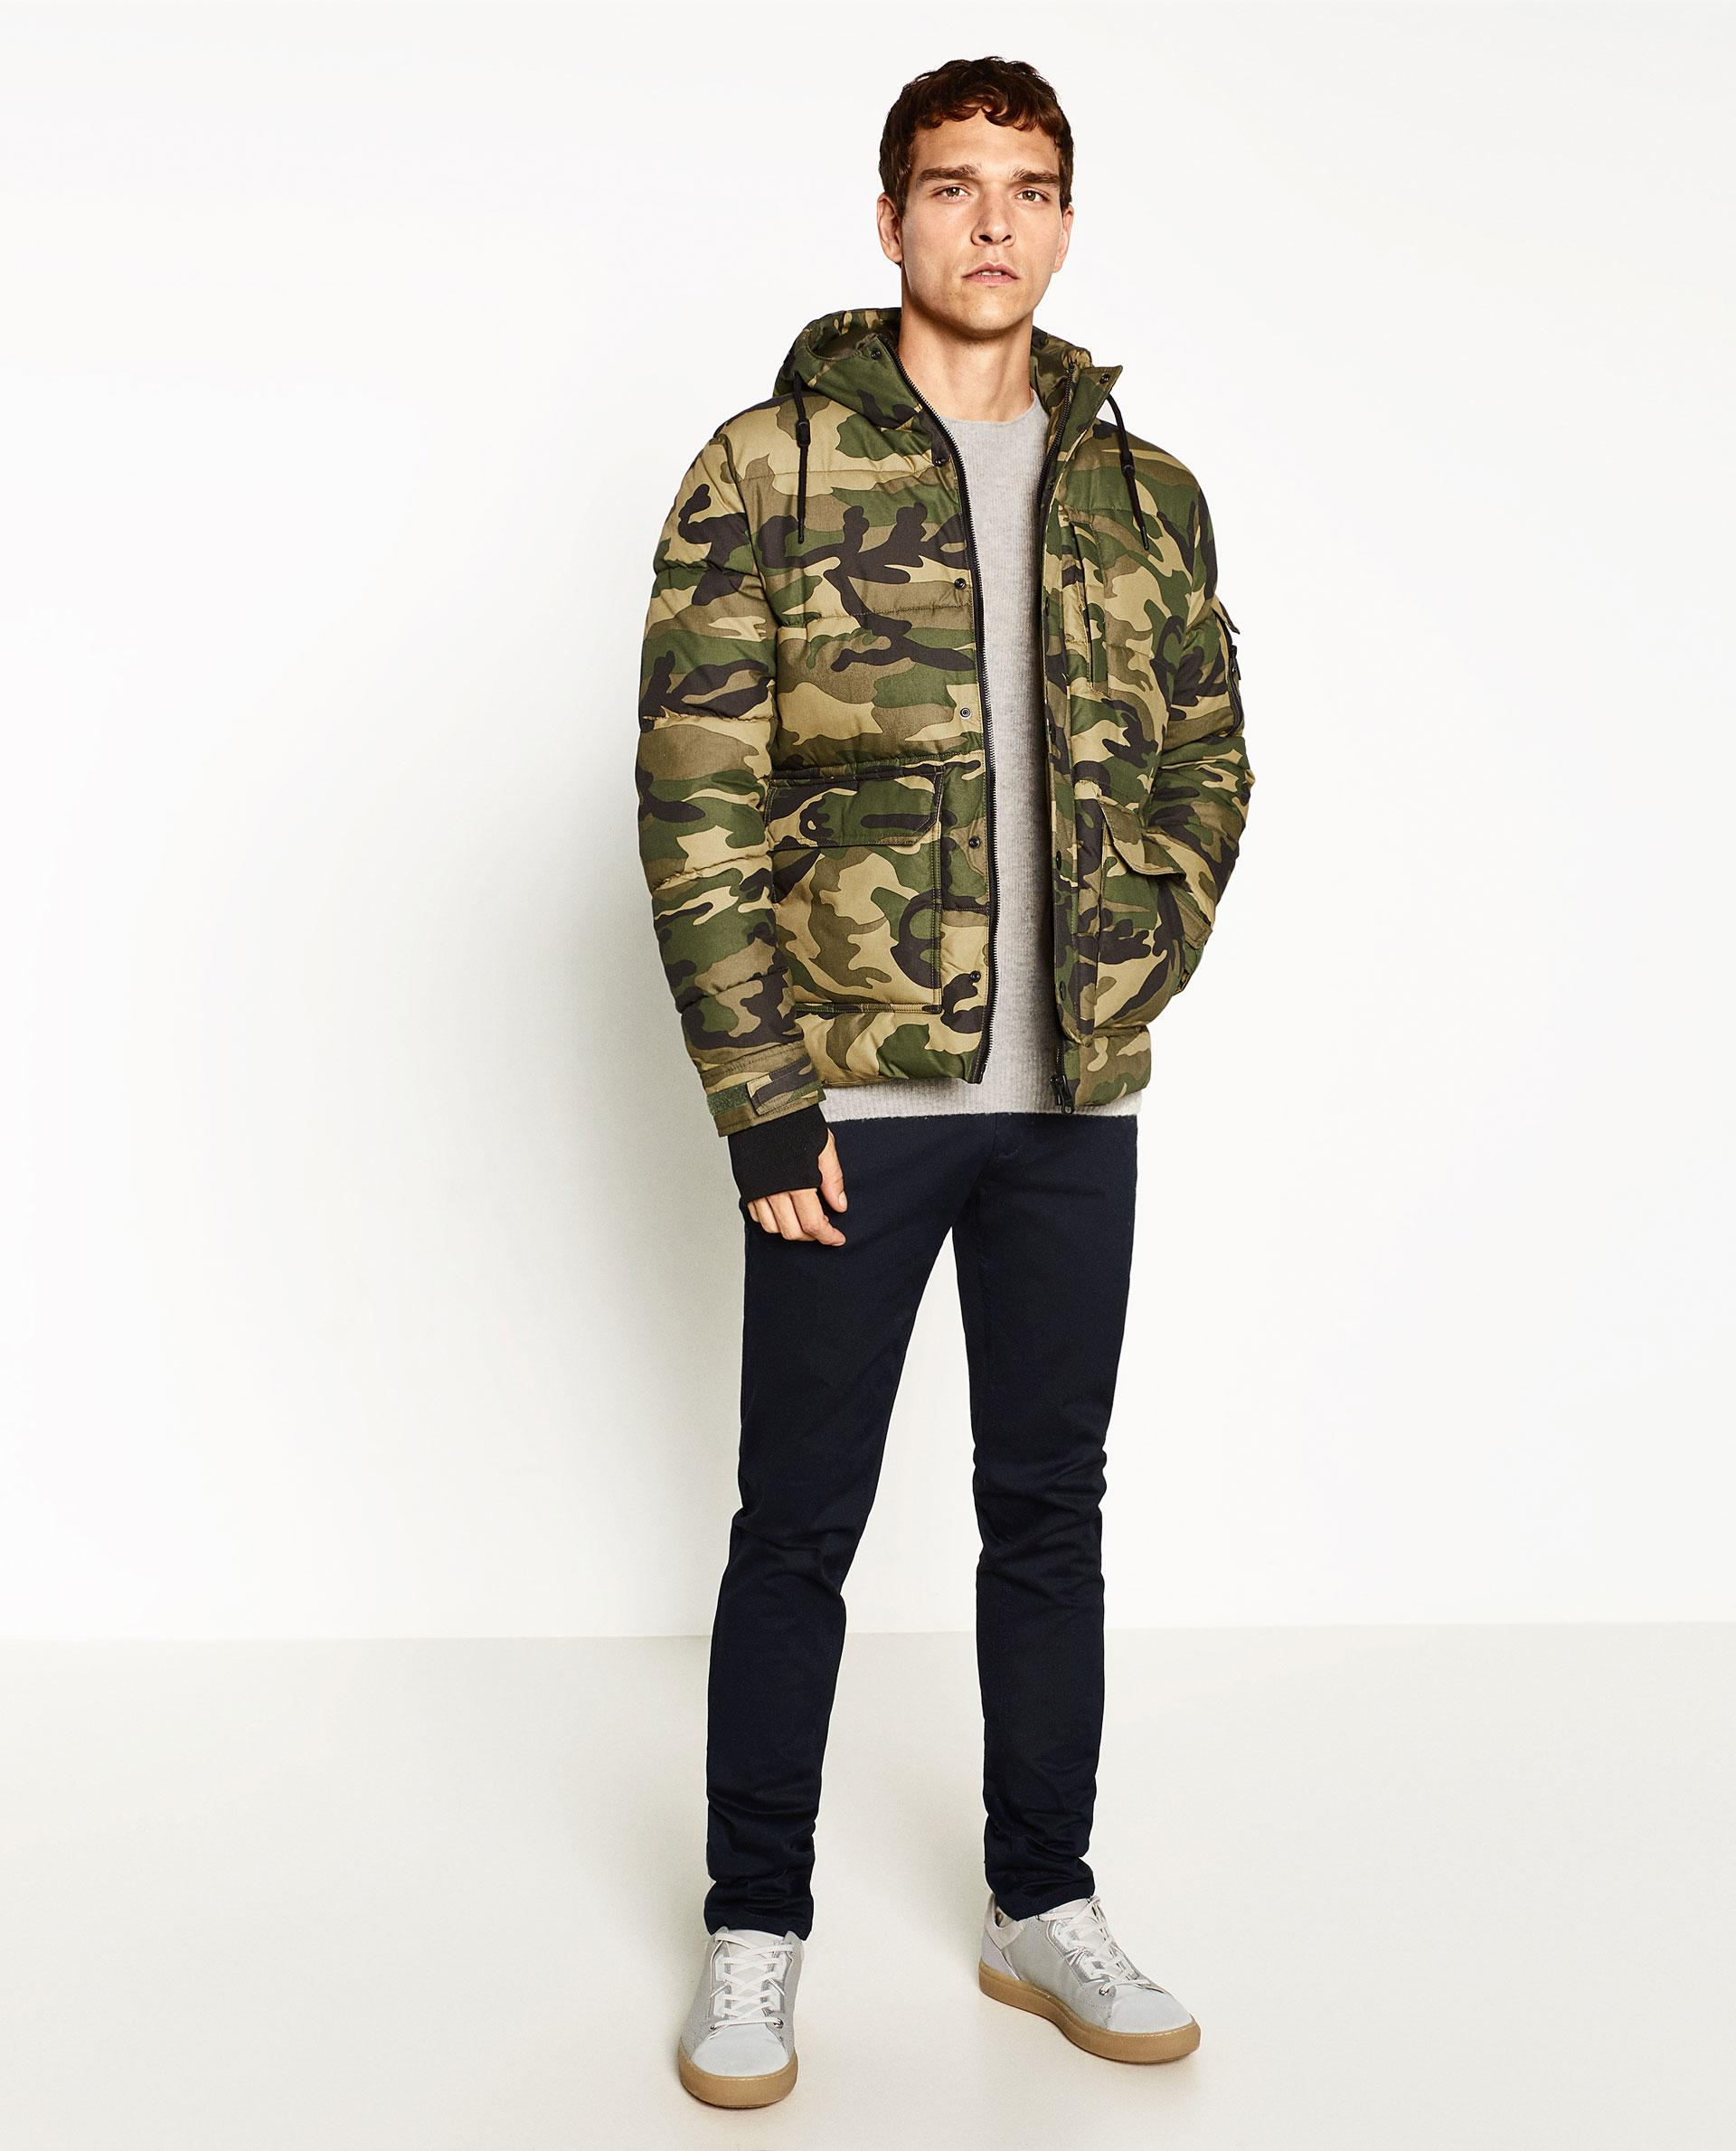 Zara Camouflage Jacket for Men | Lyst